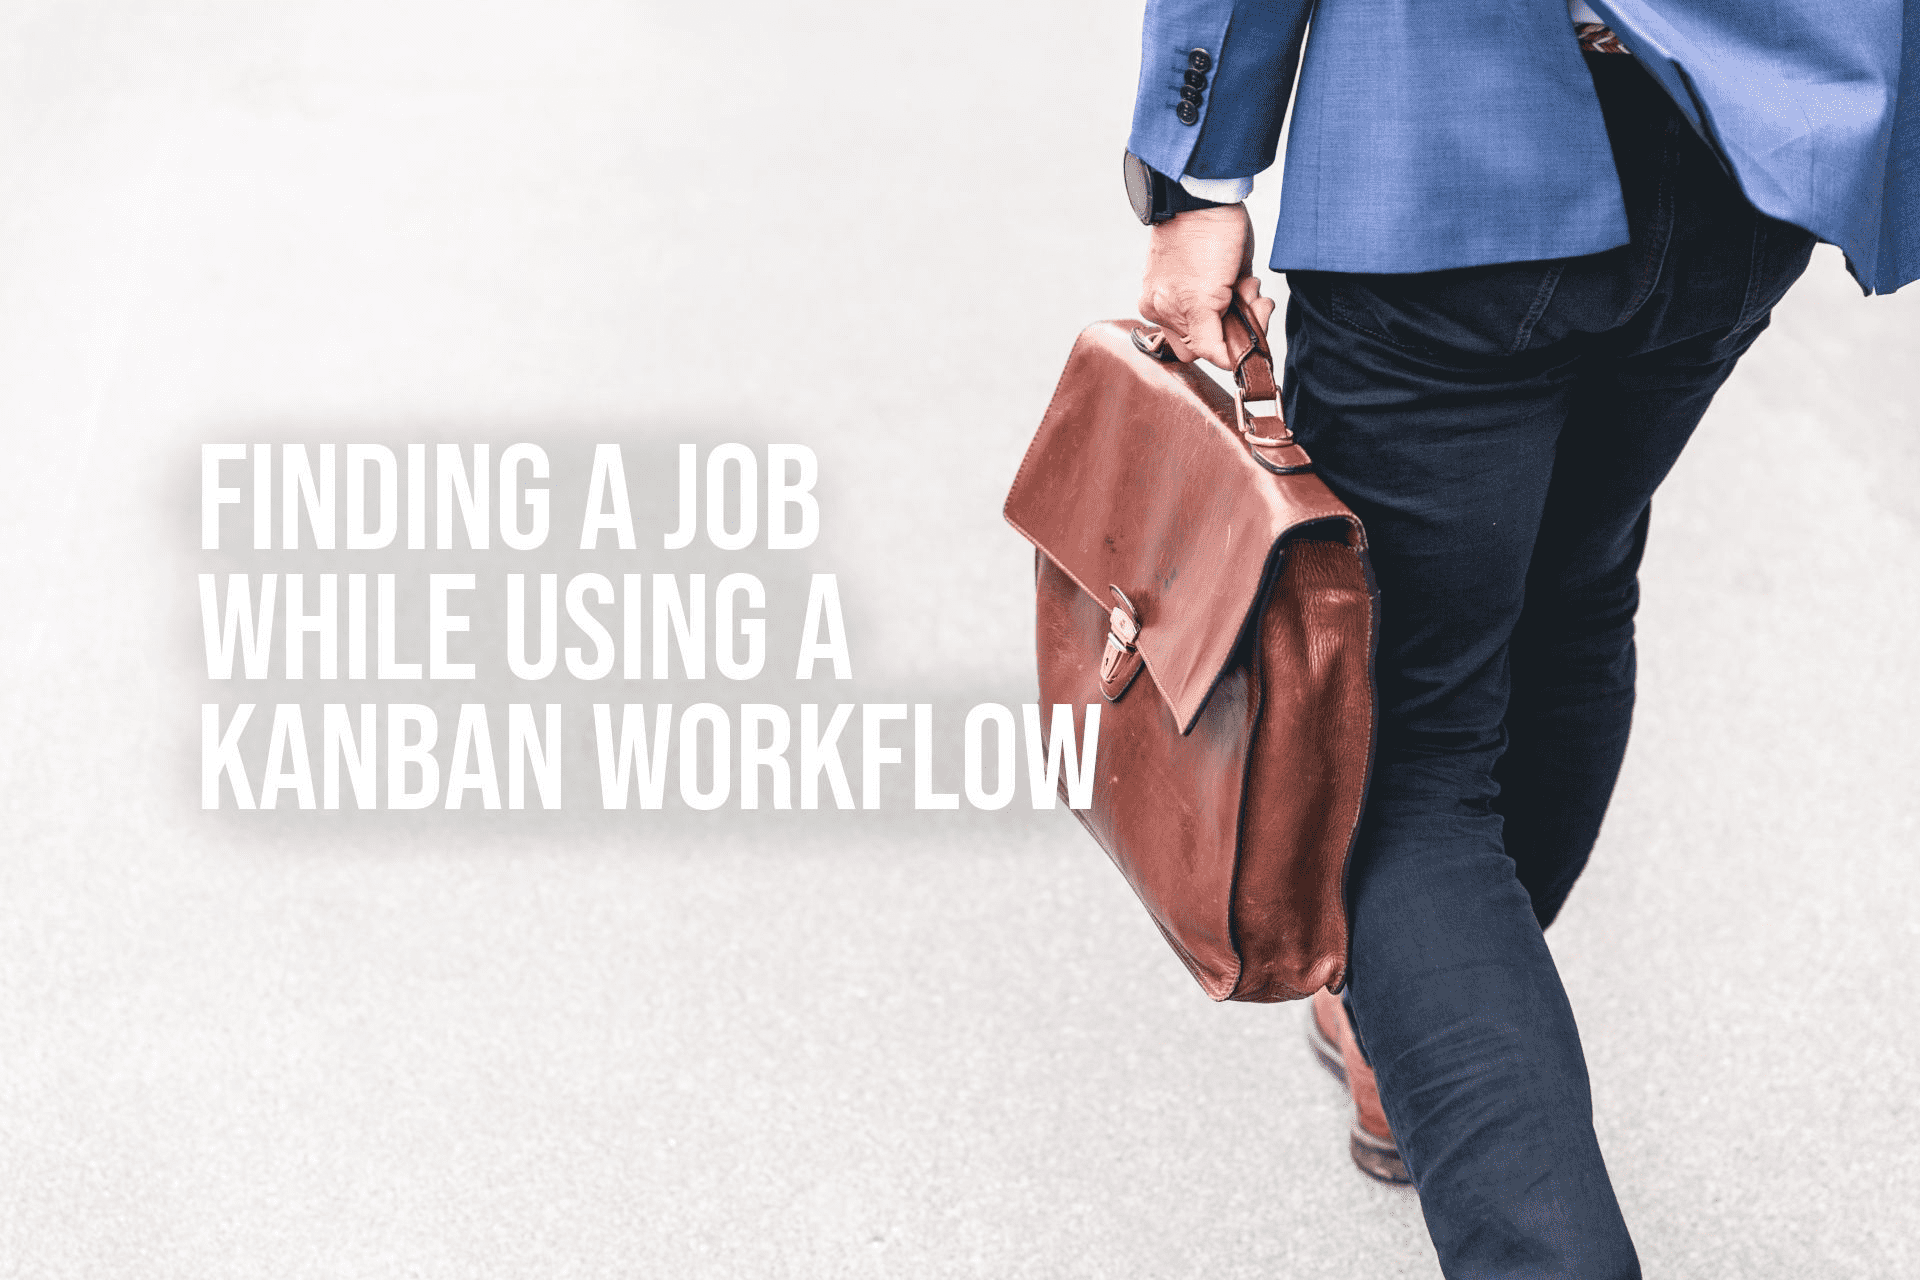 Finding a Job While Using a Kanban Workflow